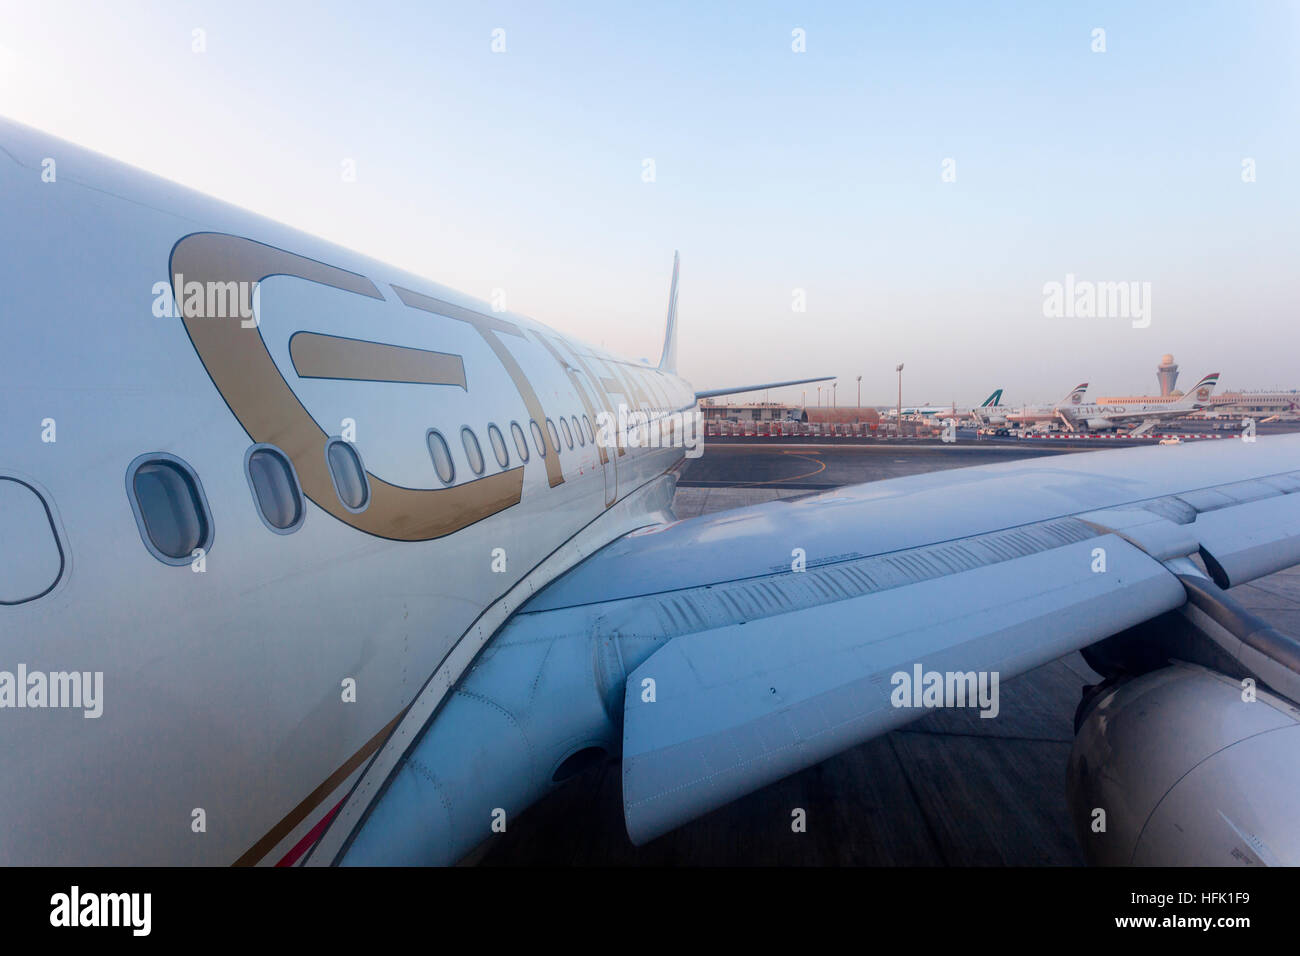 Etihad Airlines aircraft at the runway of the Abu Dhabi International Airport - Stock Image